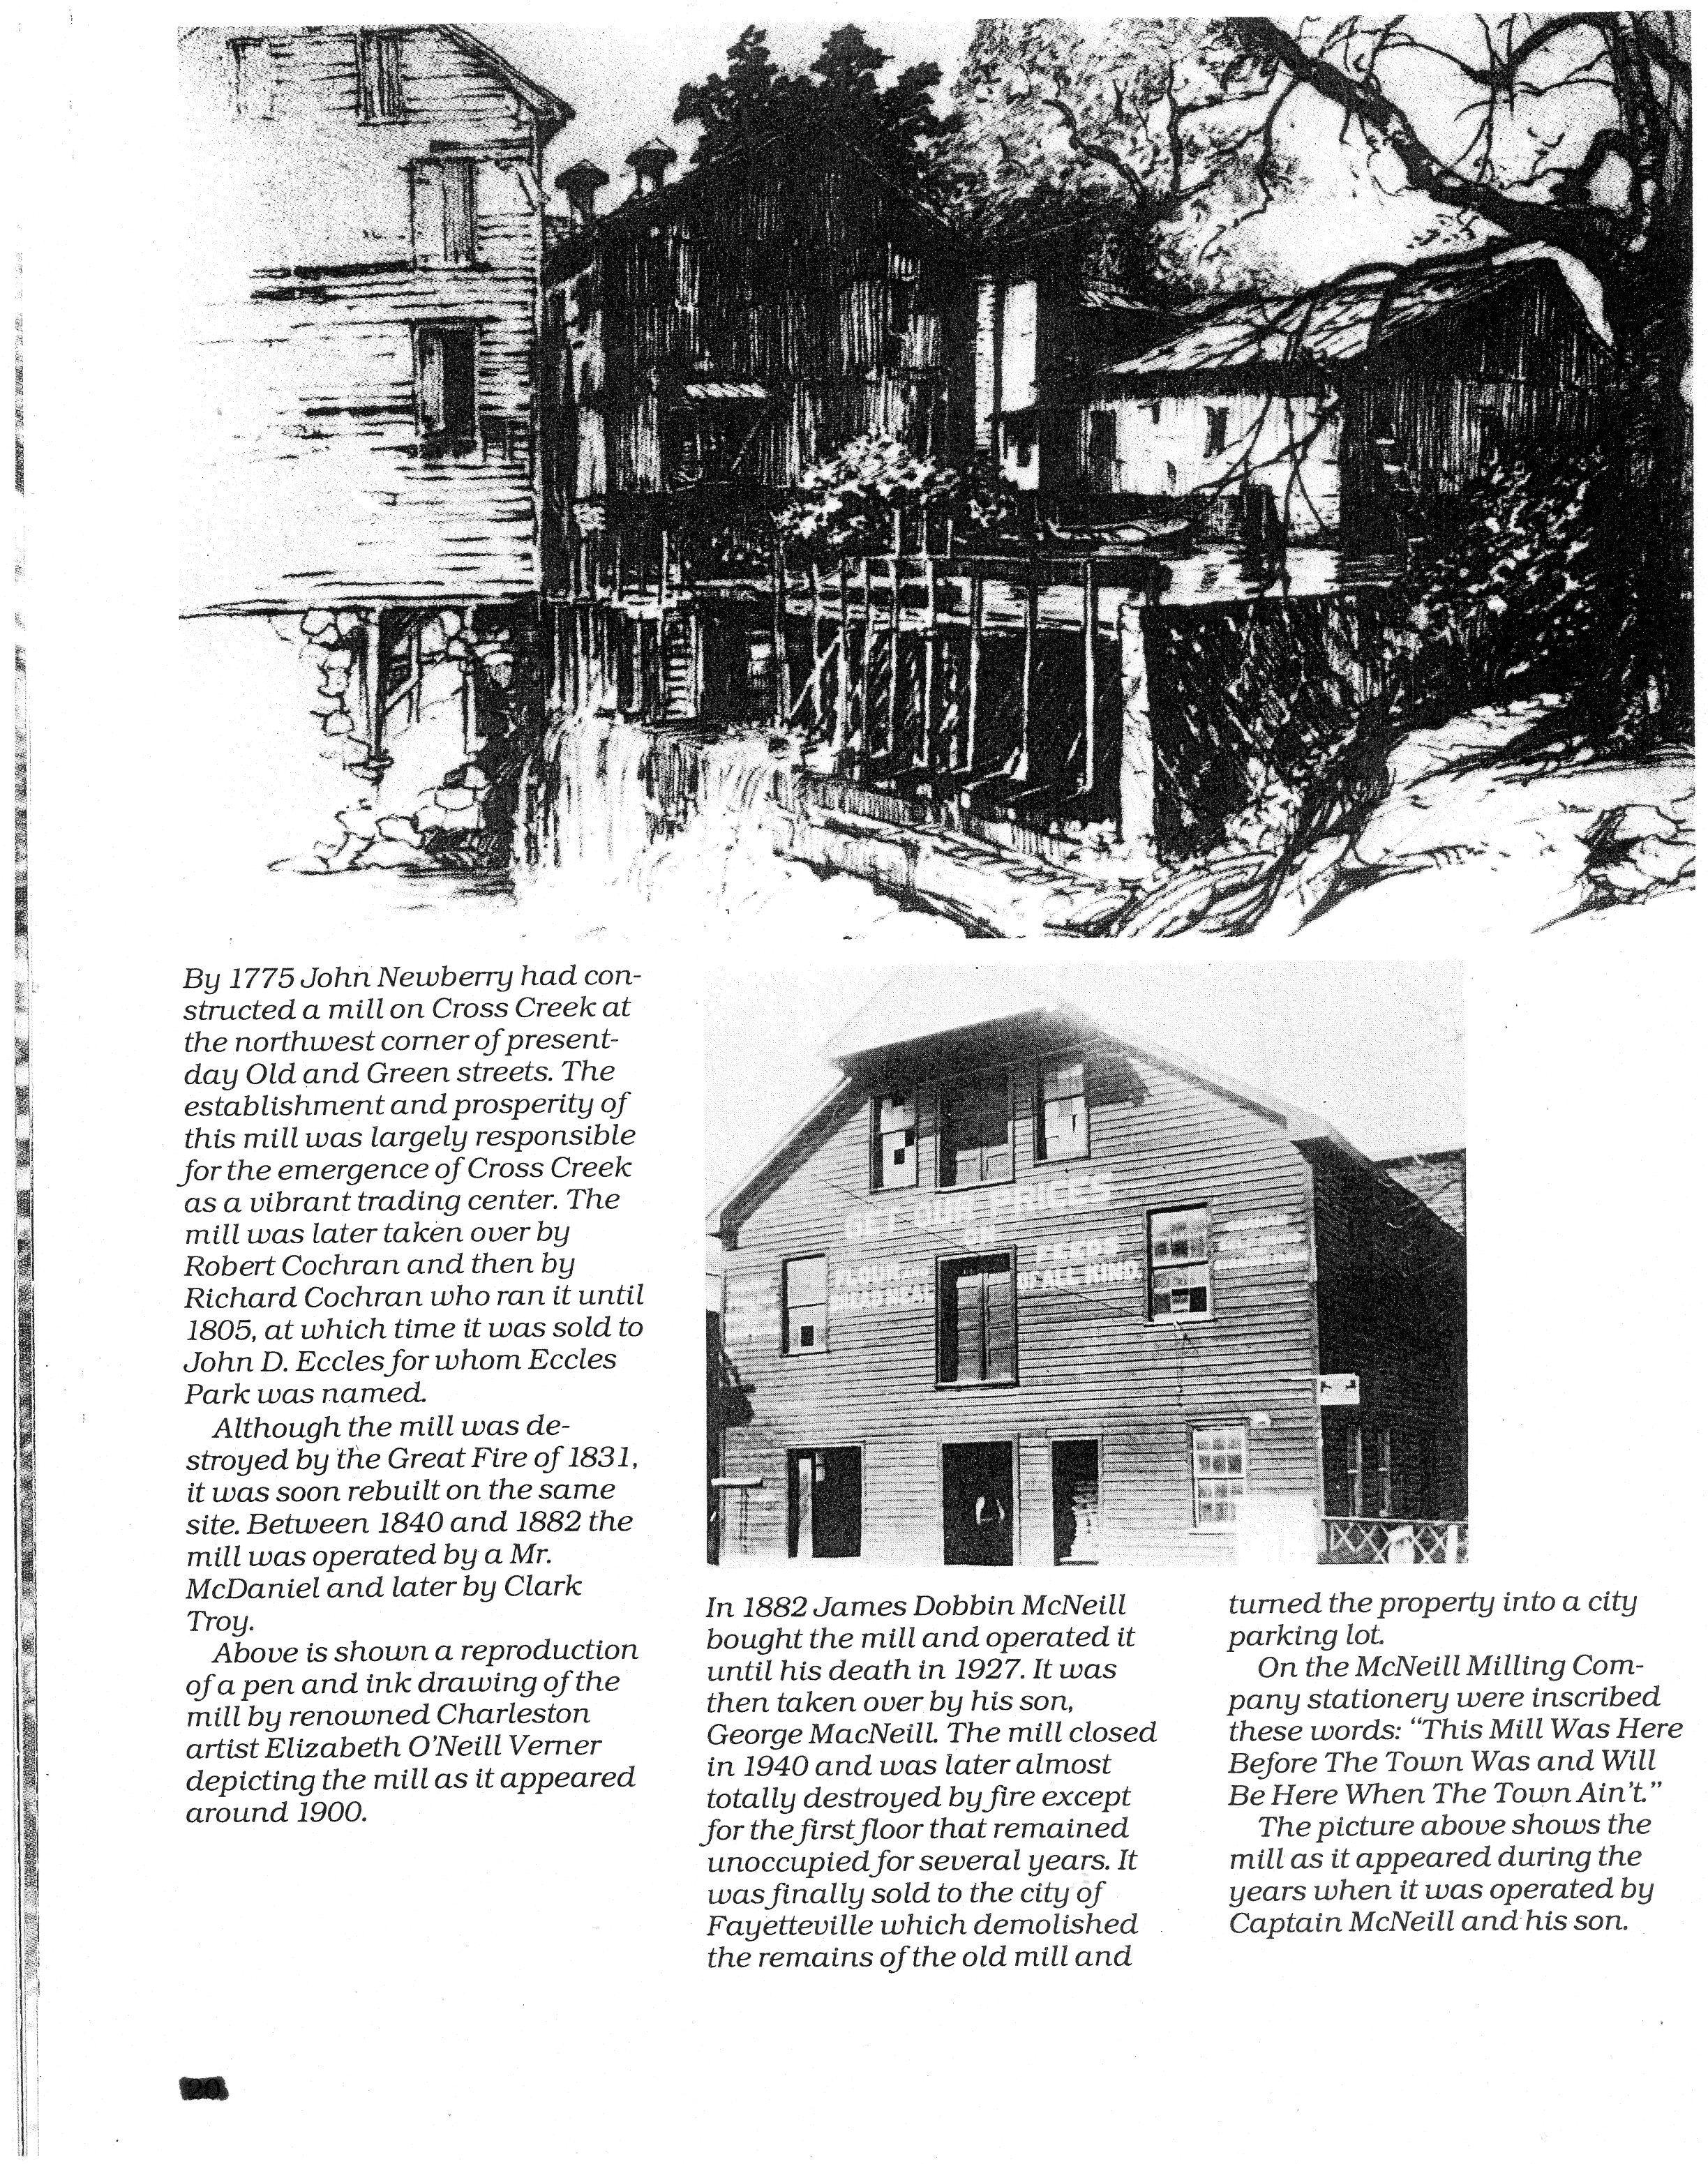 Newberry Mill Was Built In 1775 But Was Destroyed In The Great  # Muebles En Fayetteville Nc